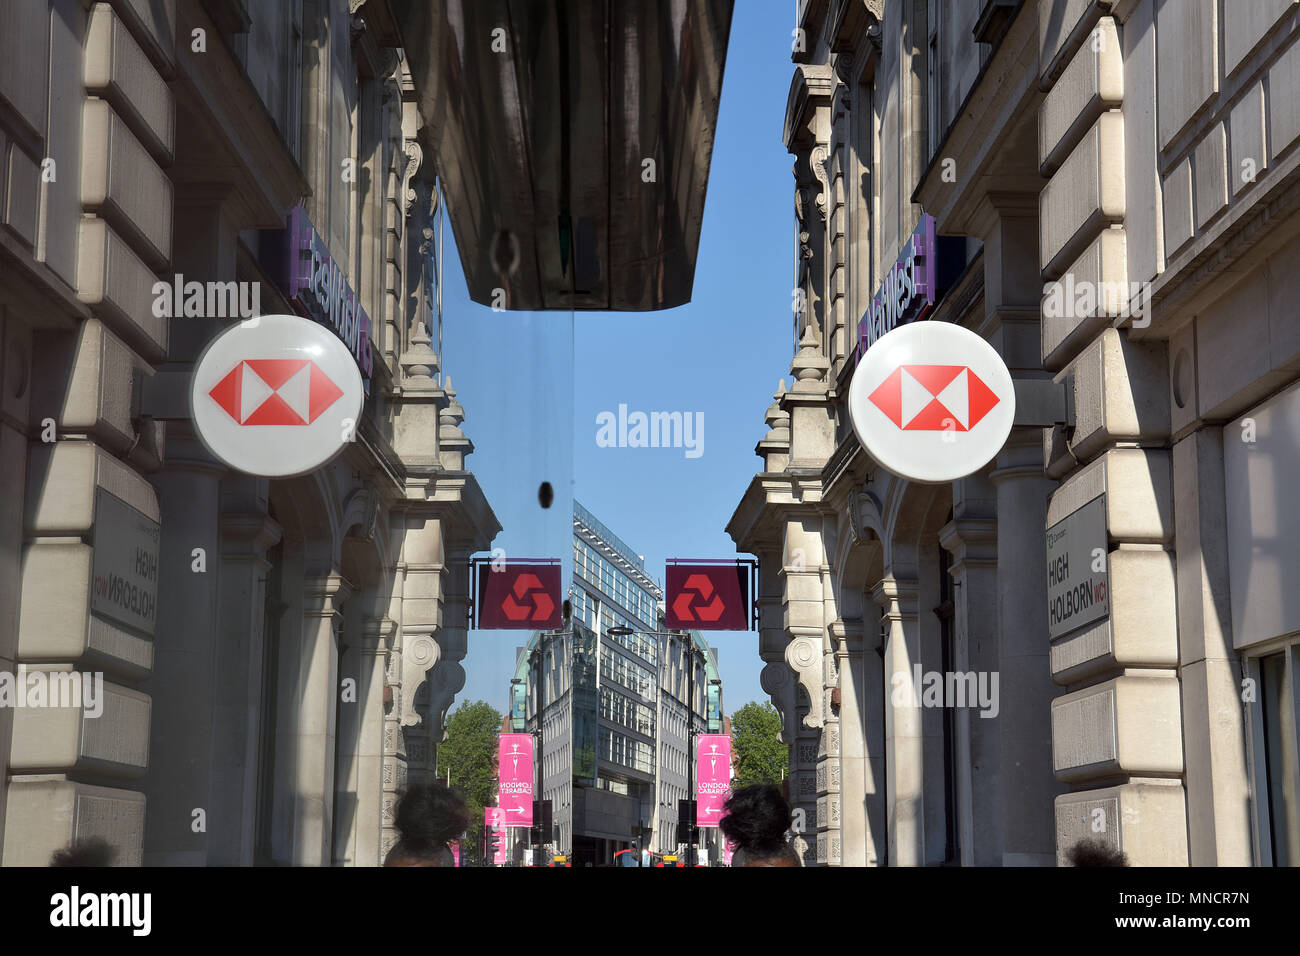 People walk past the bank branches of the HSBC and NatWest banks on High Holborn, central London. - Stock Image